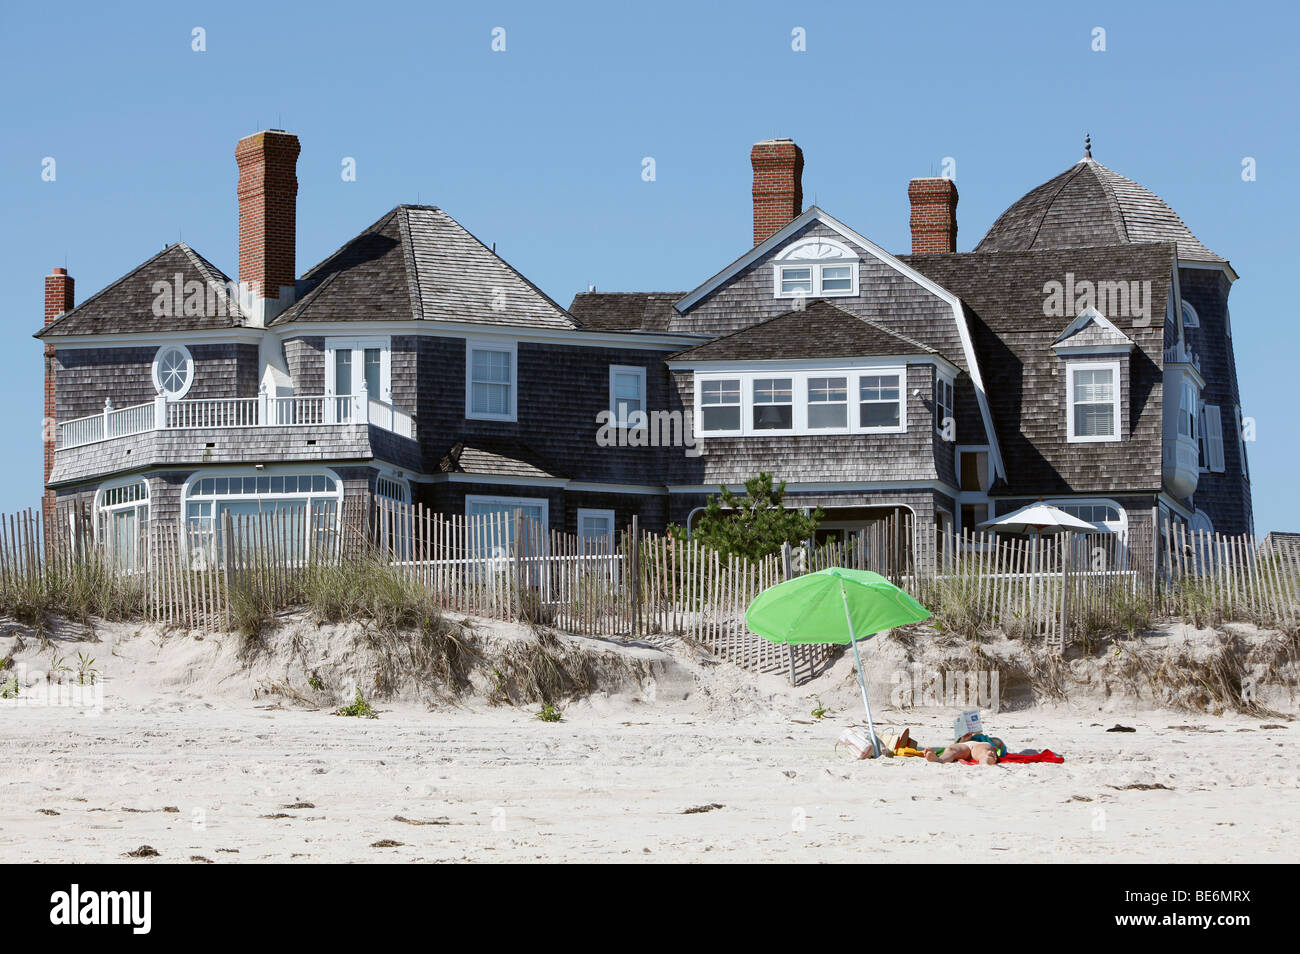 Big beach house southhampton new york stock photo for Large beach house